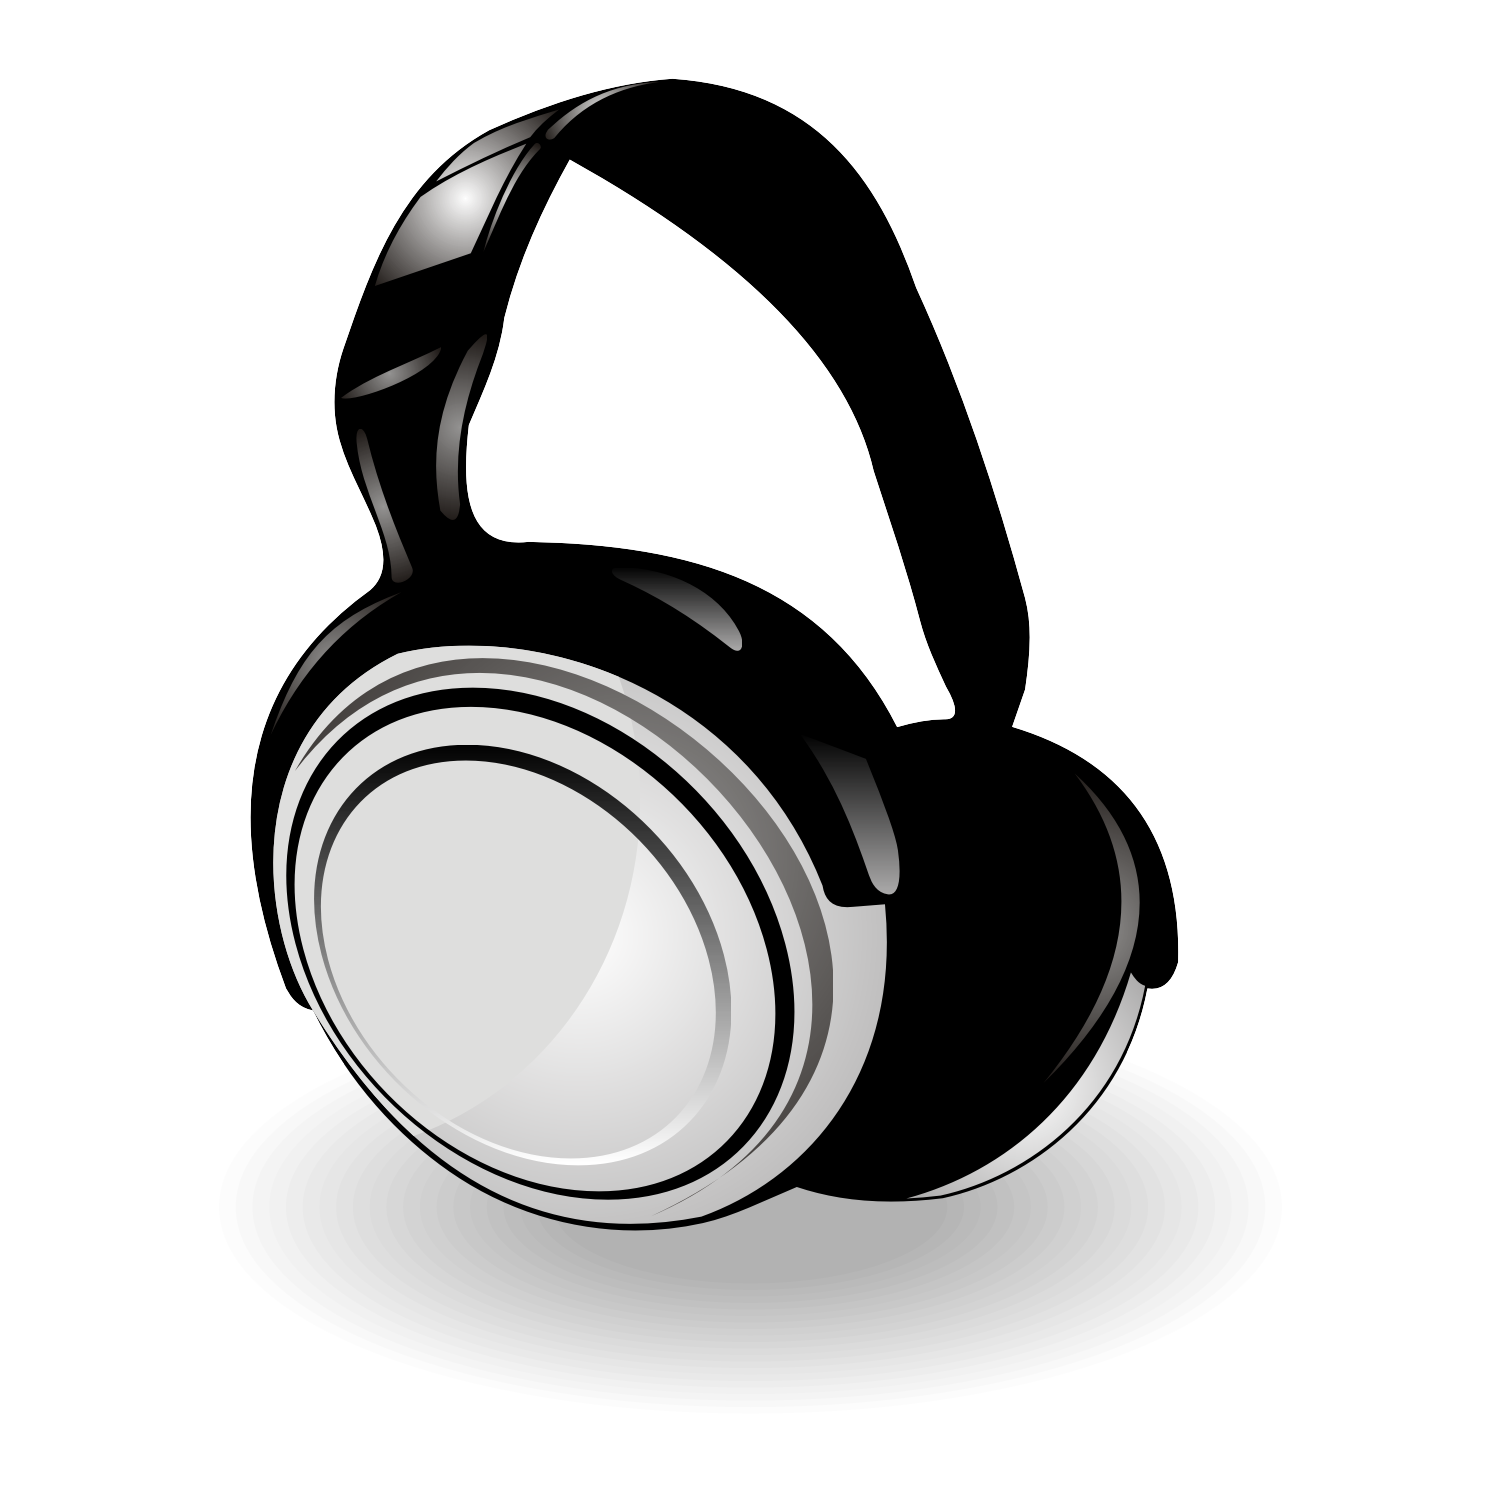 25 vector headphone free cliparts that you can download to you ...